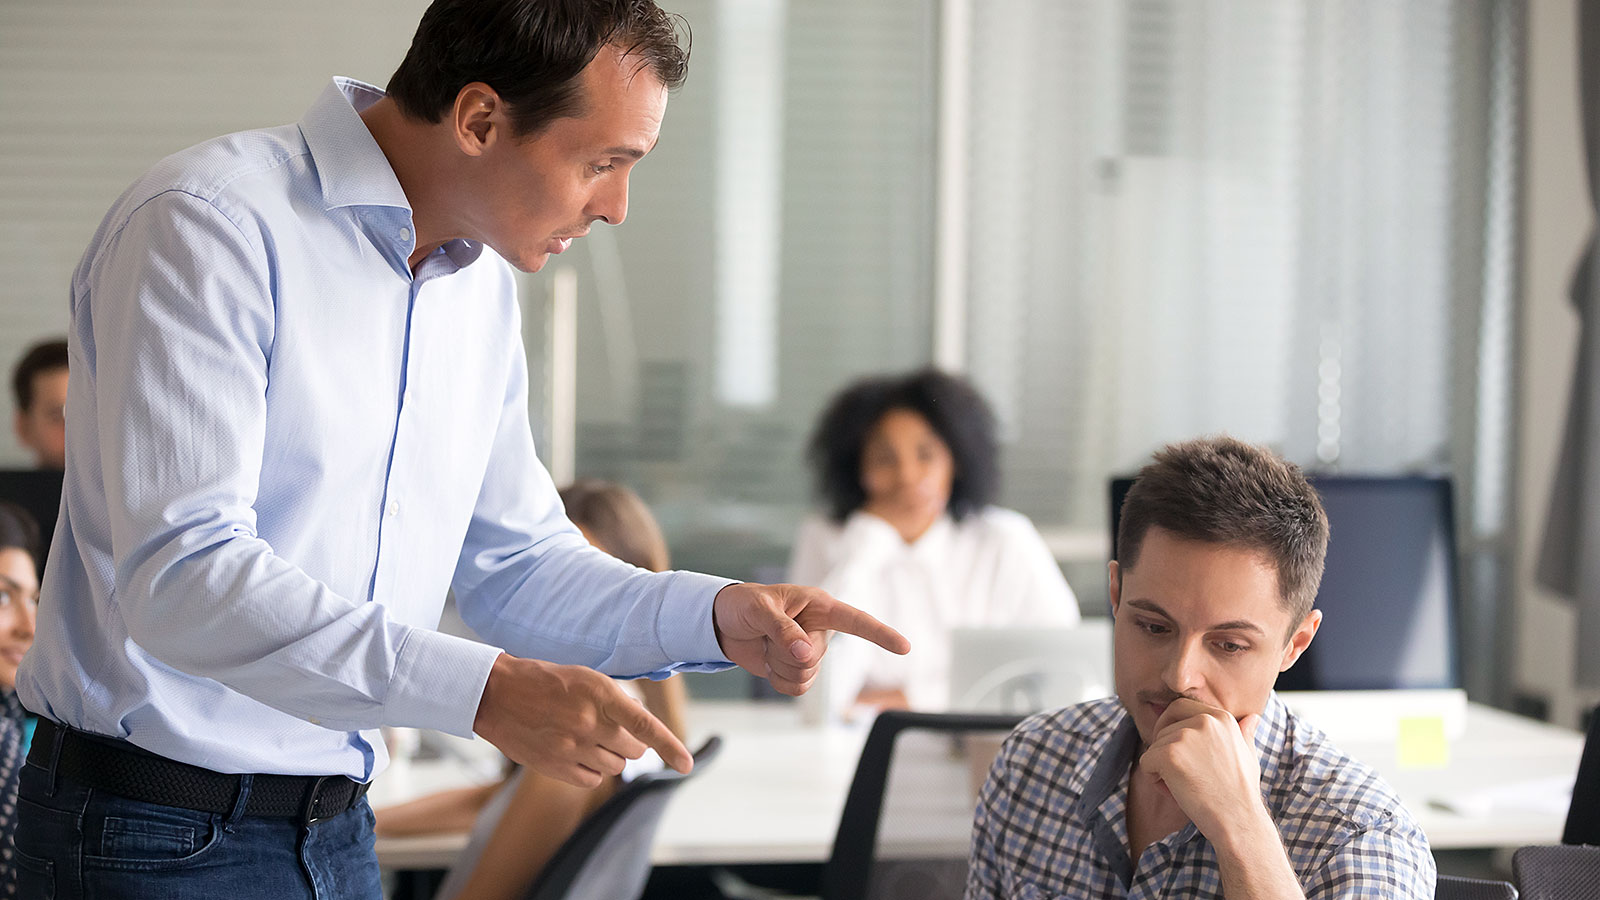 The 4 types of employees that managers should fire immediately